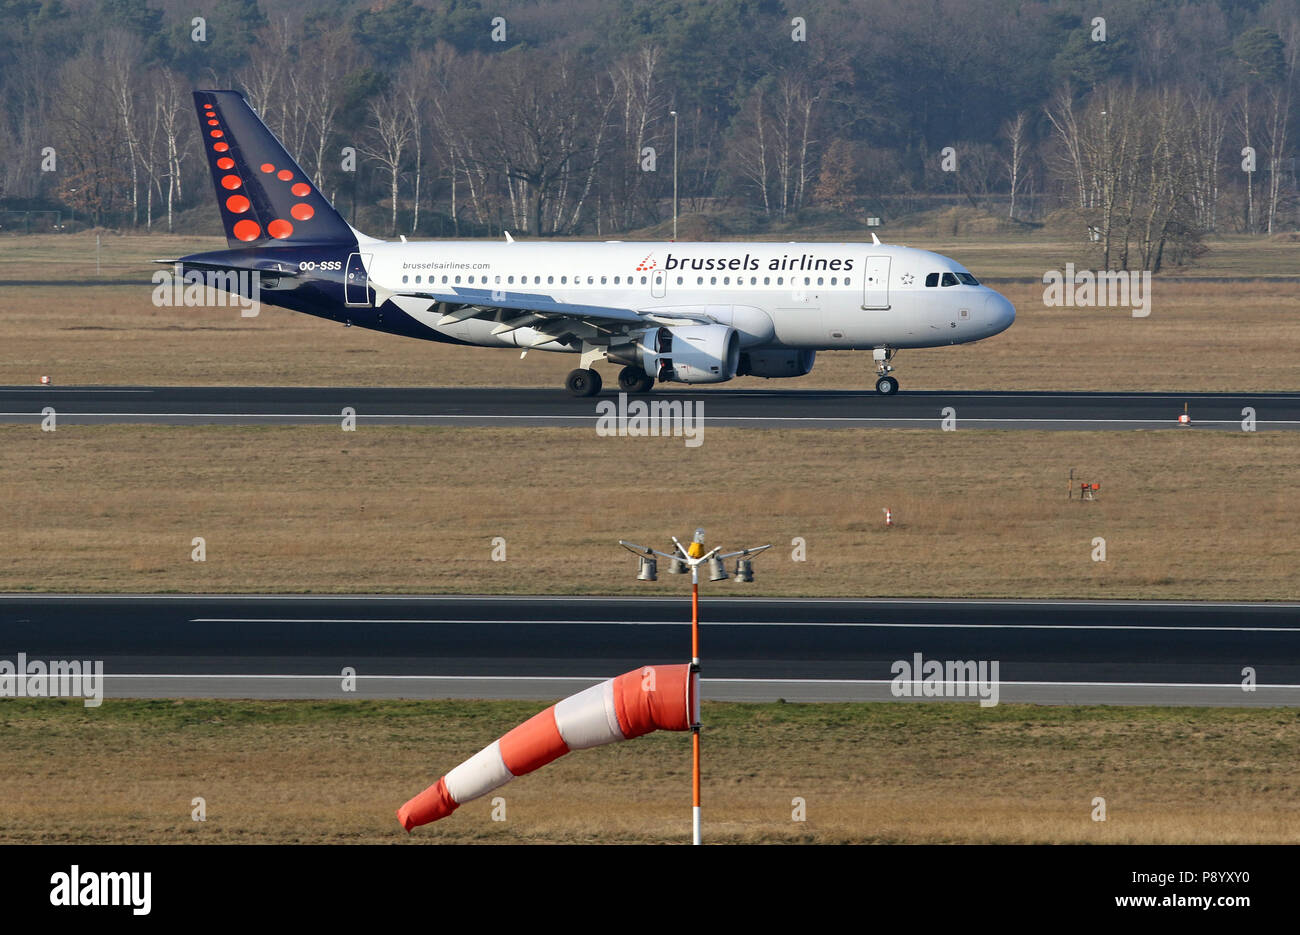 Berlin, Germany, Airbus A319 of the airline Brussels Airlines on the runway of the airport Berlin-Tegel - Stock Image